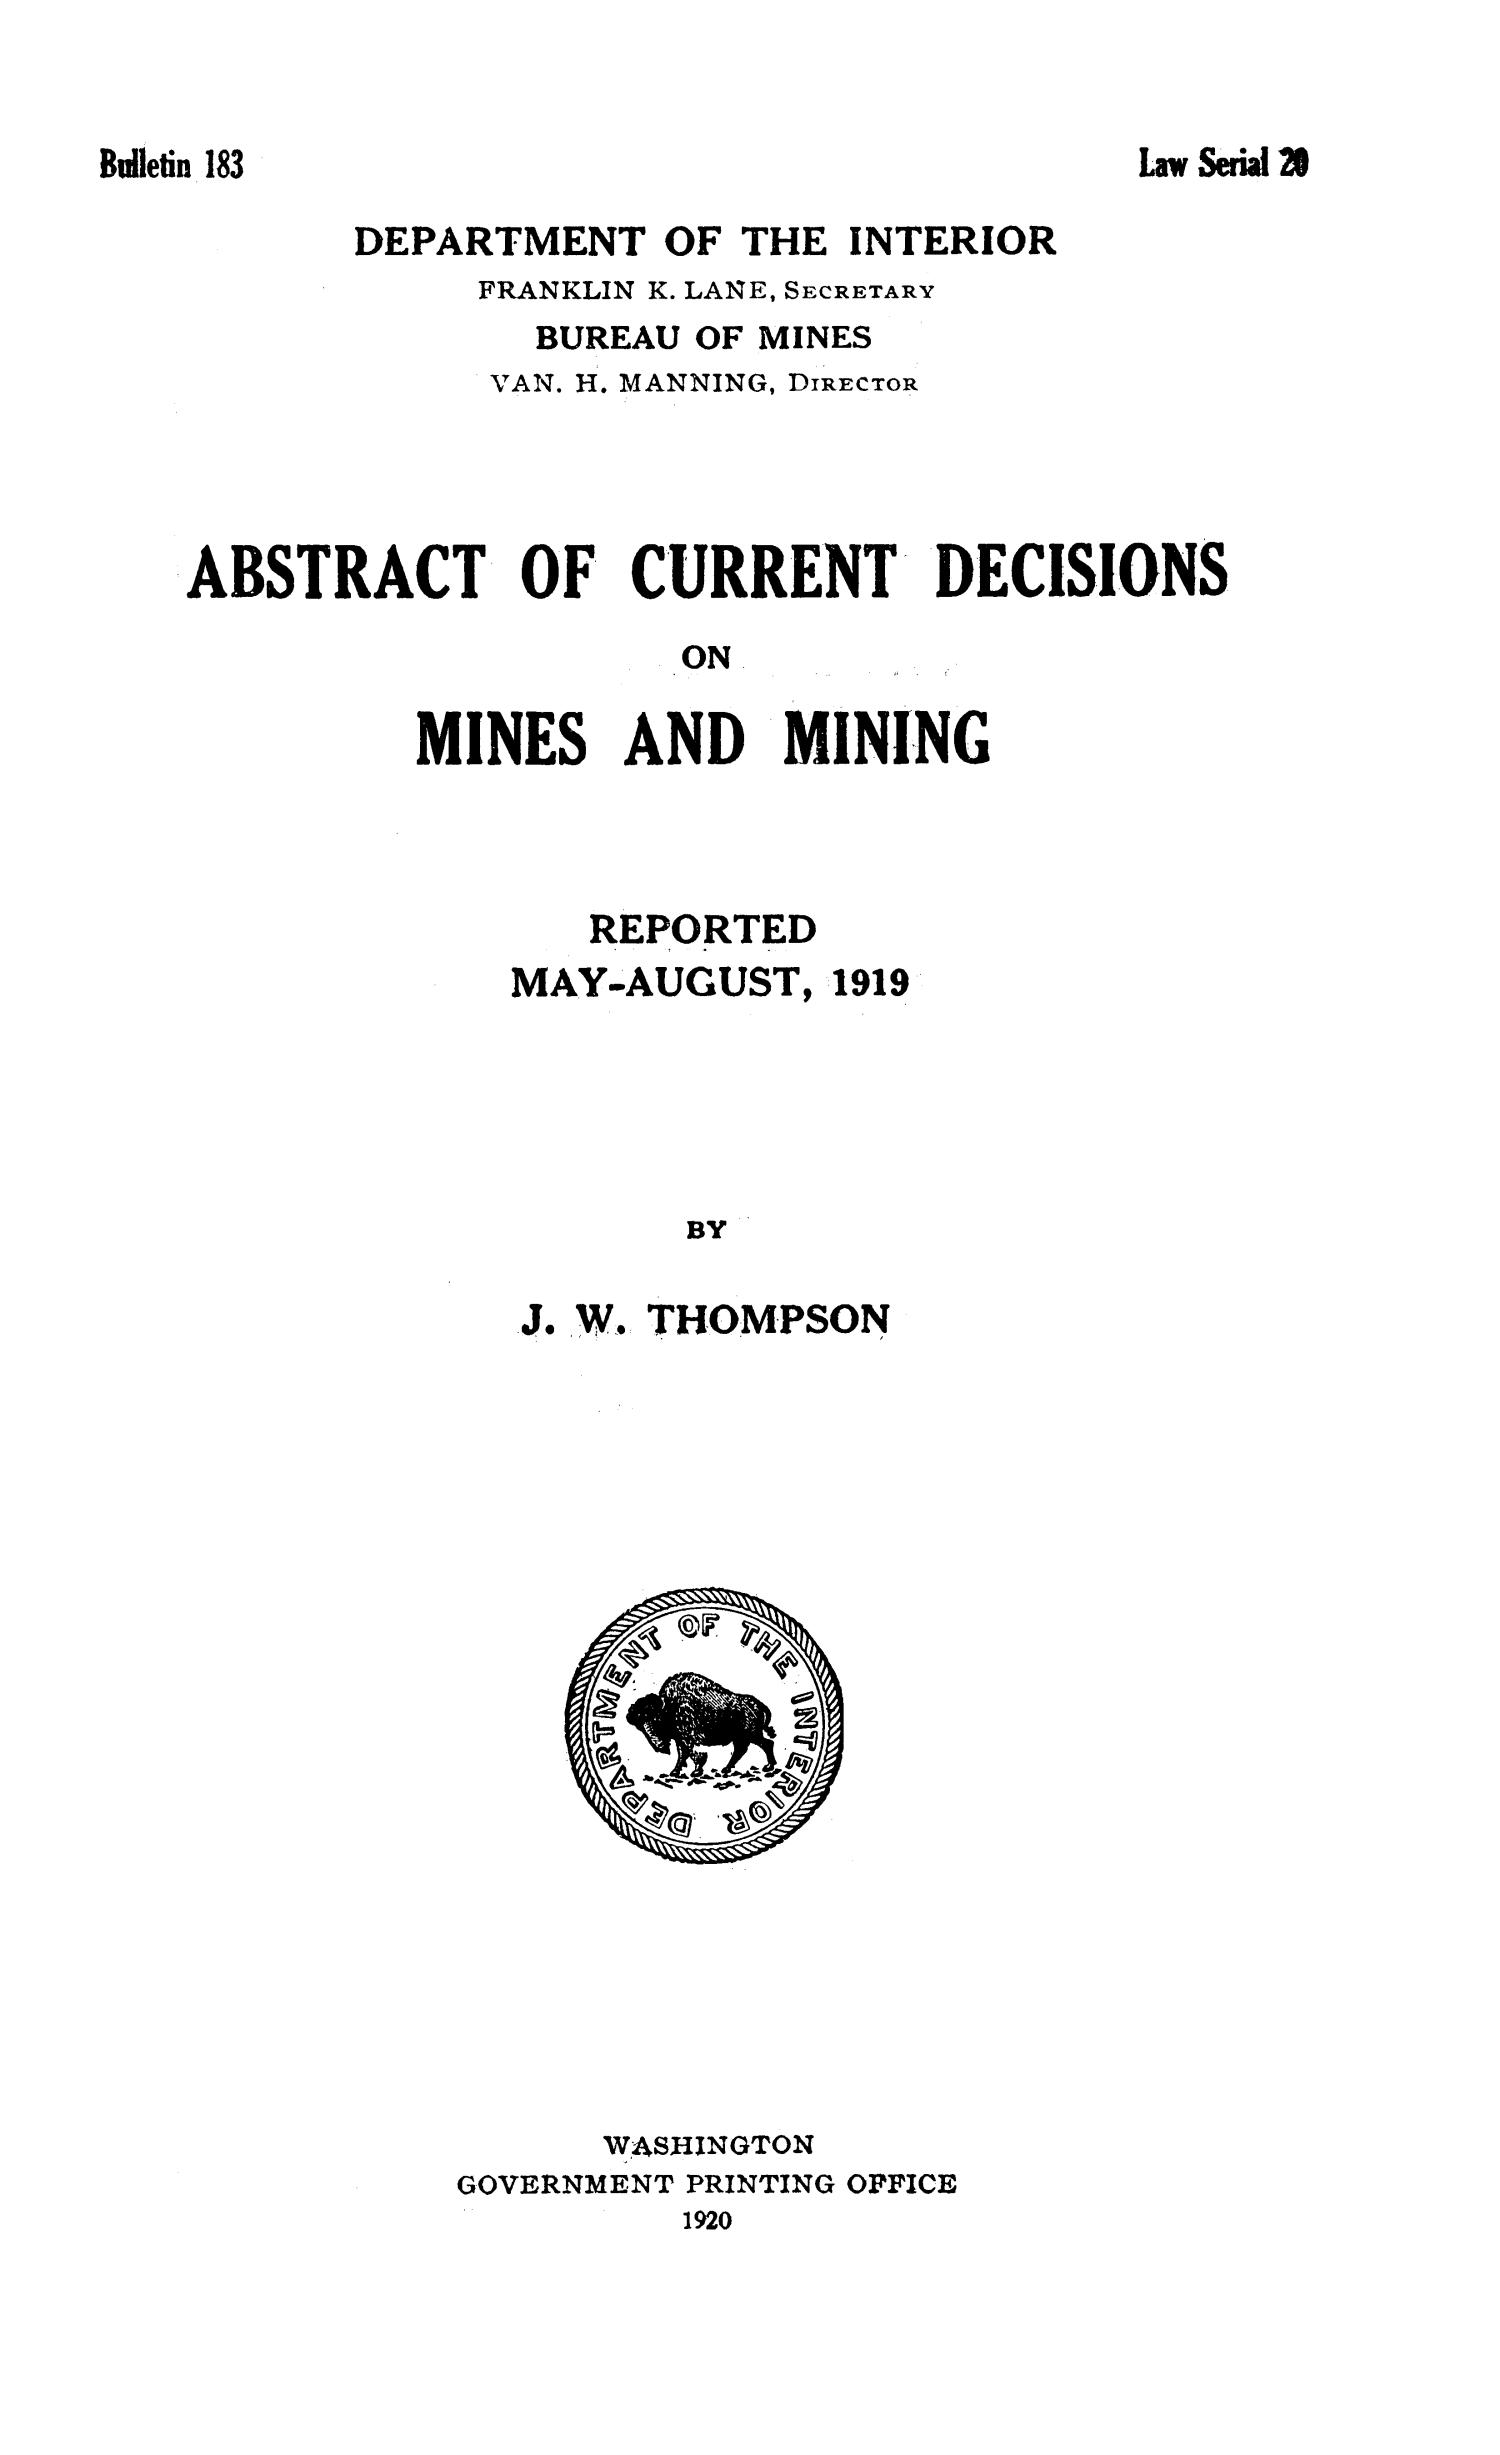 Abstracts of Current Decisions on Mines and Mining: May to August, 1919                                                                                                      I